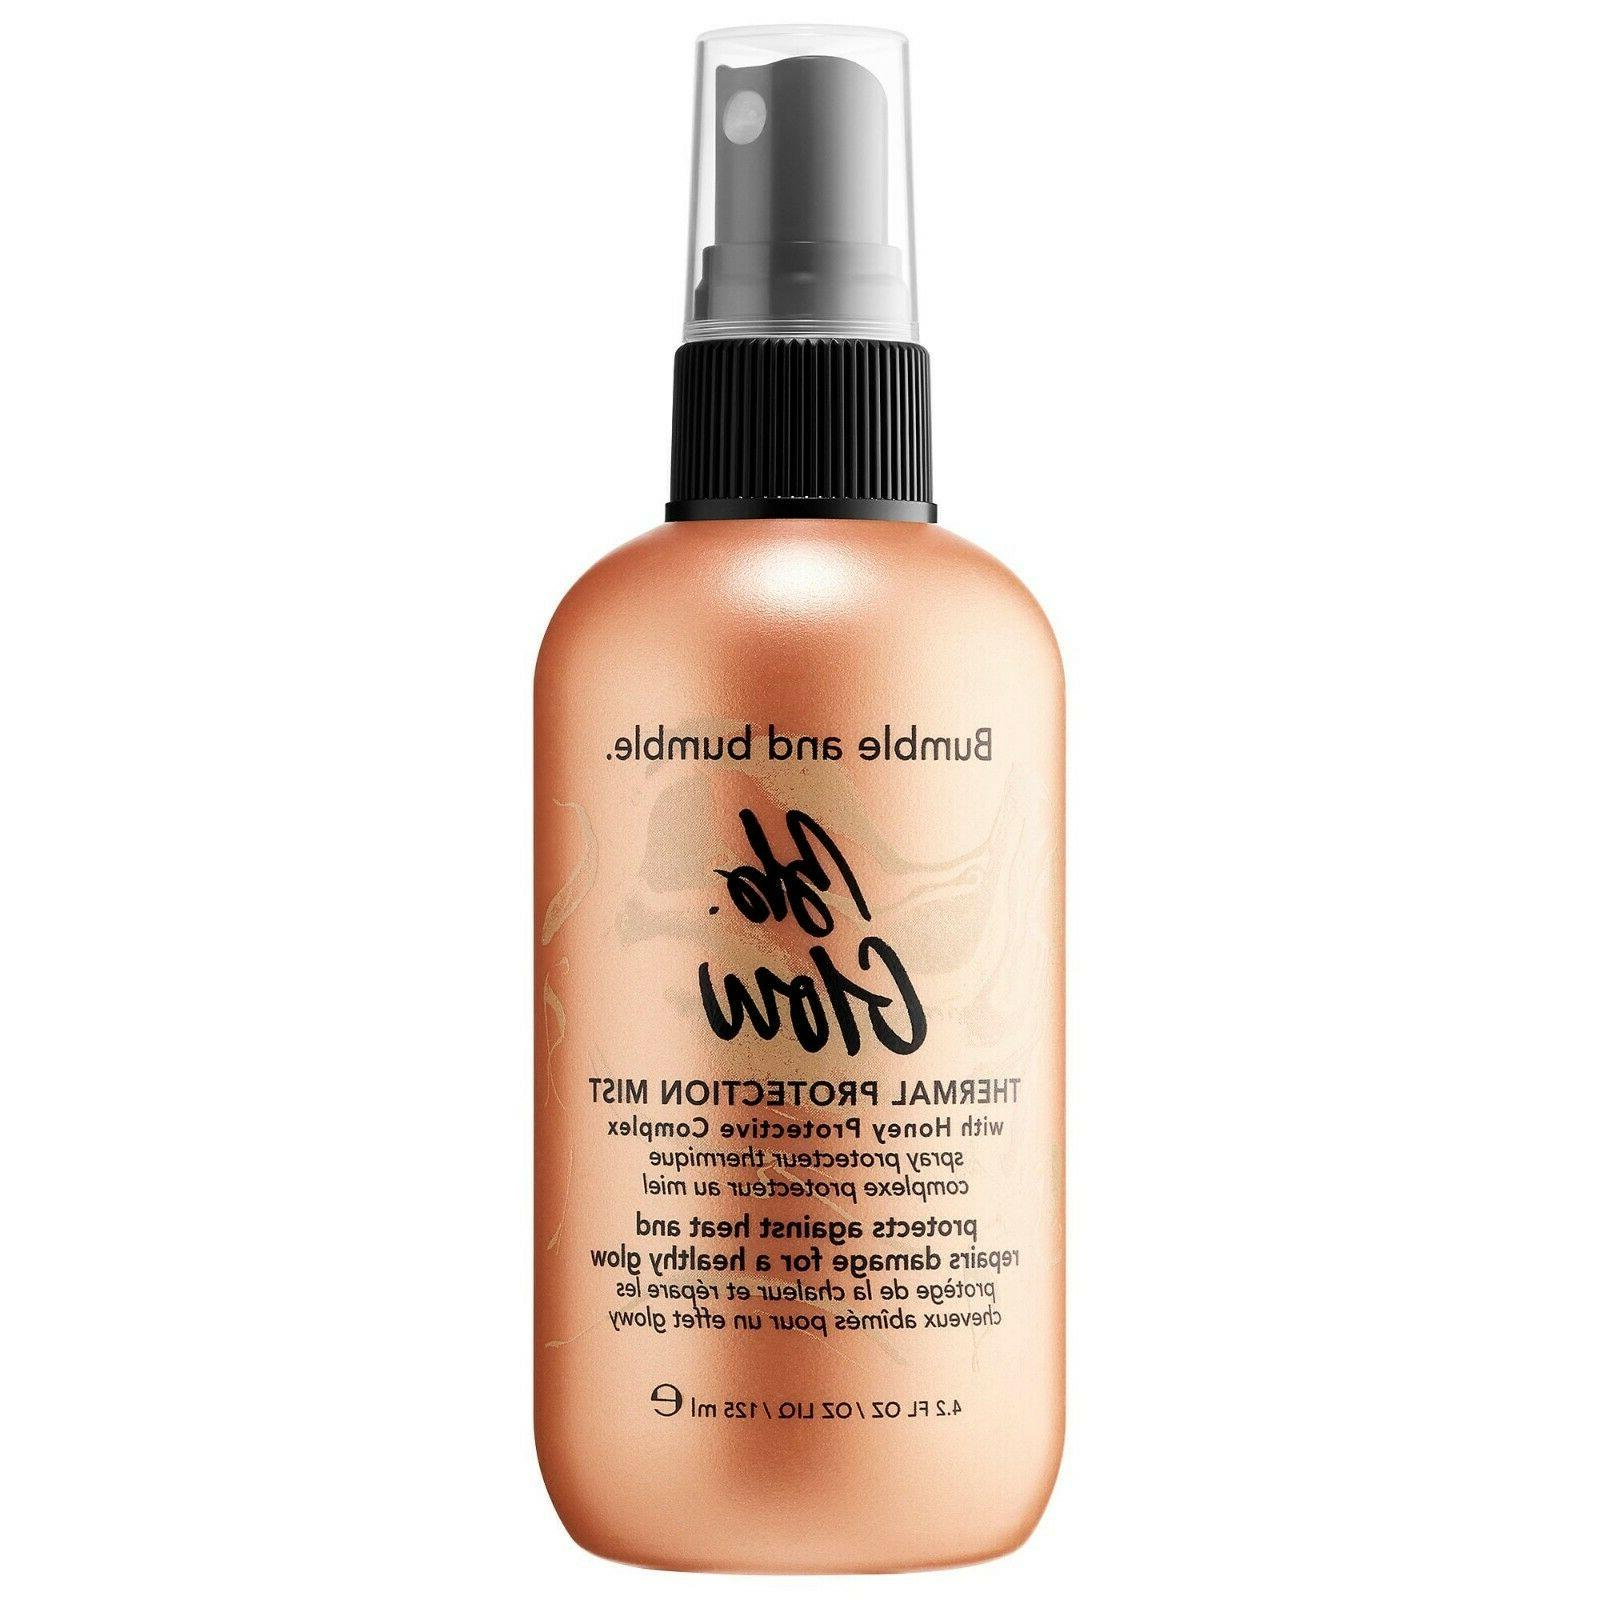 glow thermal protection mist 4 2 oz